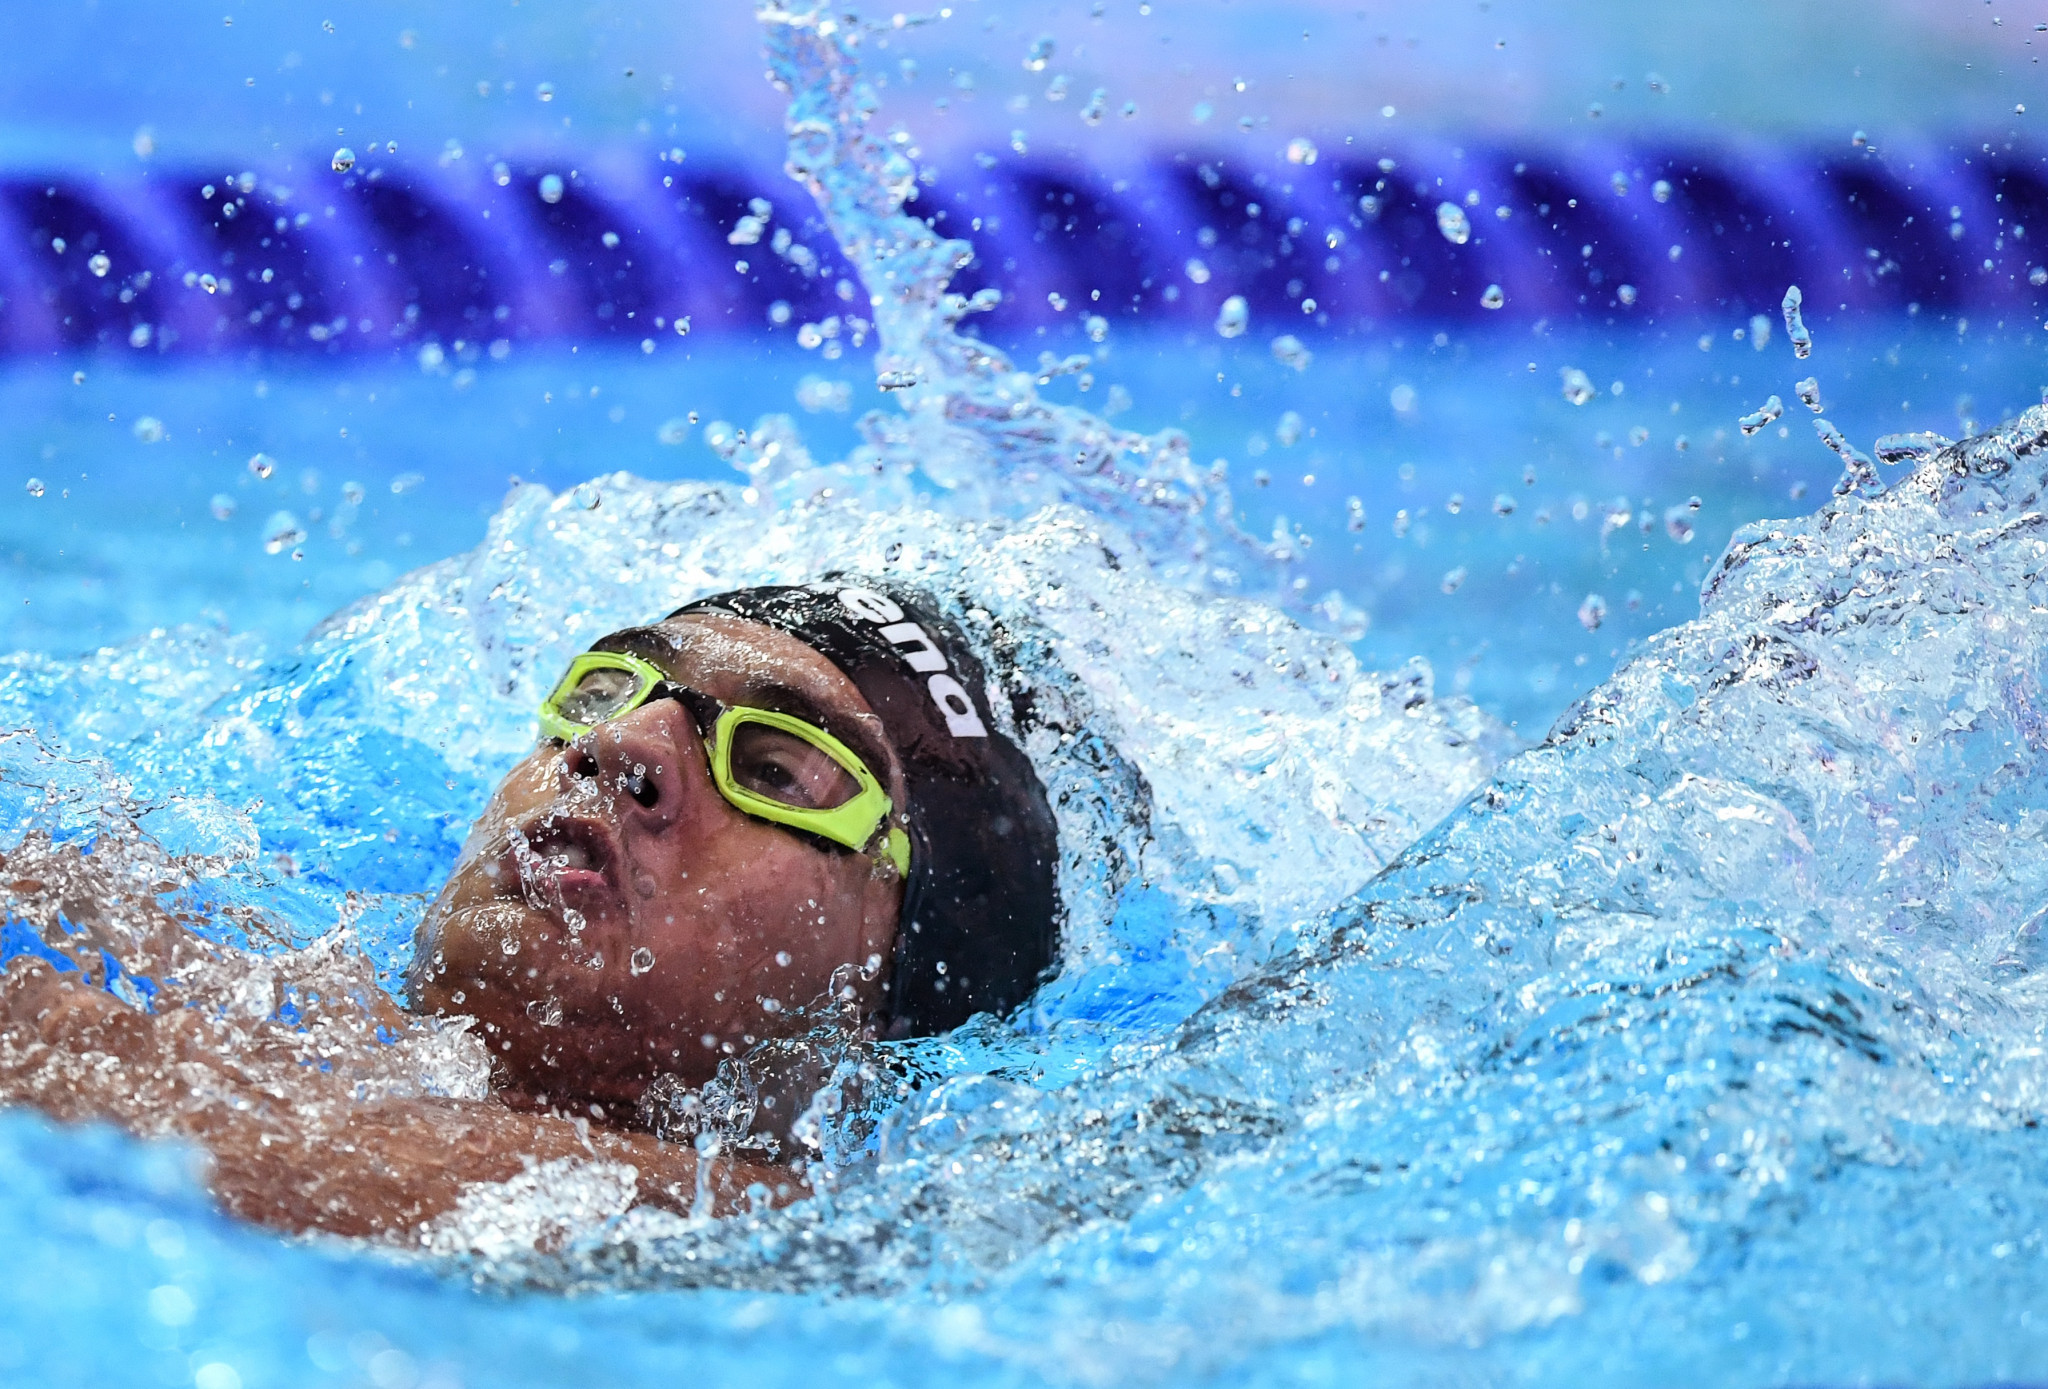 Srihari Nataraj has also qualified for the Tokyo 2020 Olympics ©Getty Images